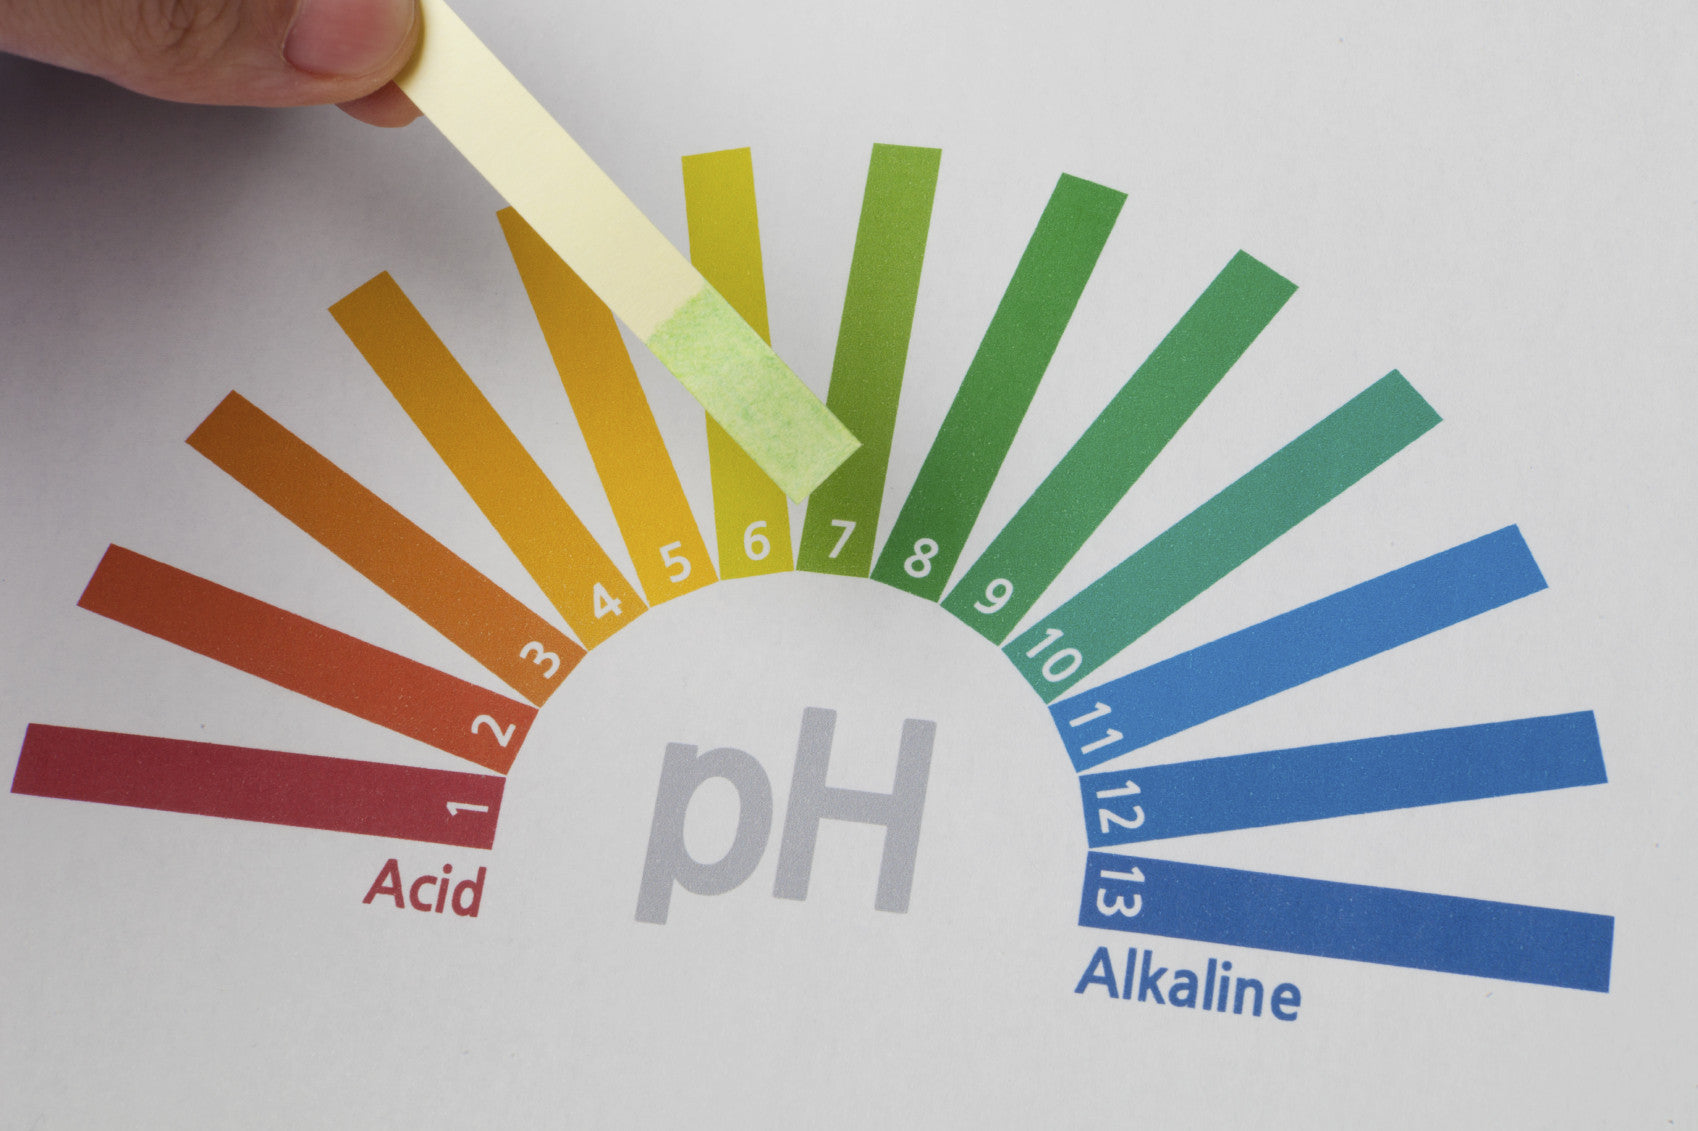 How to Test Your pH